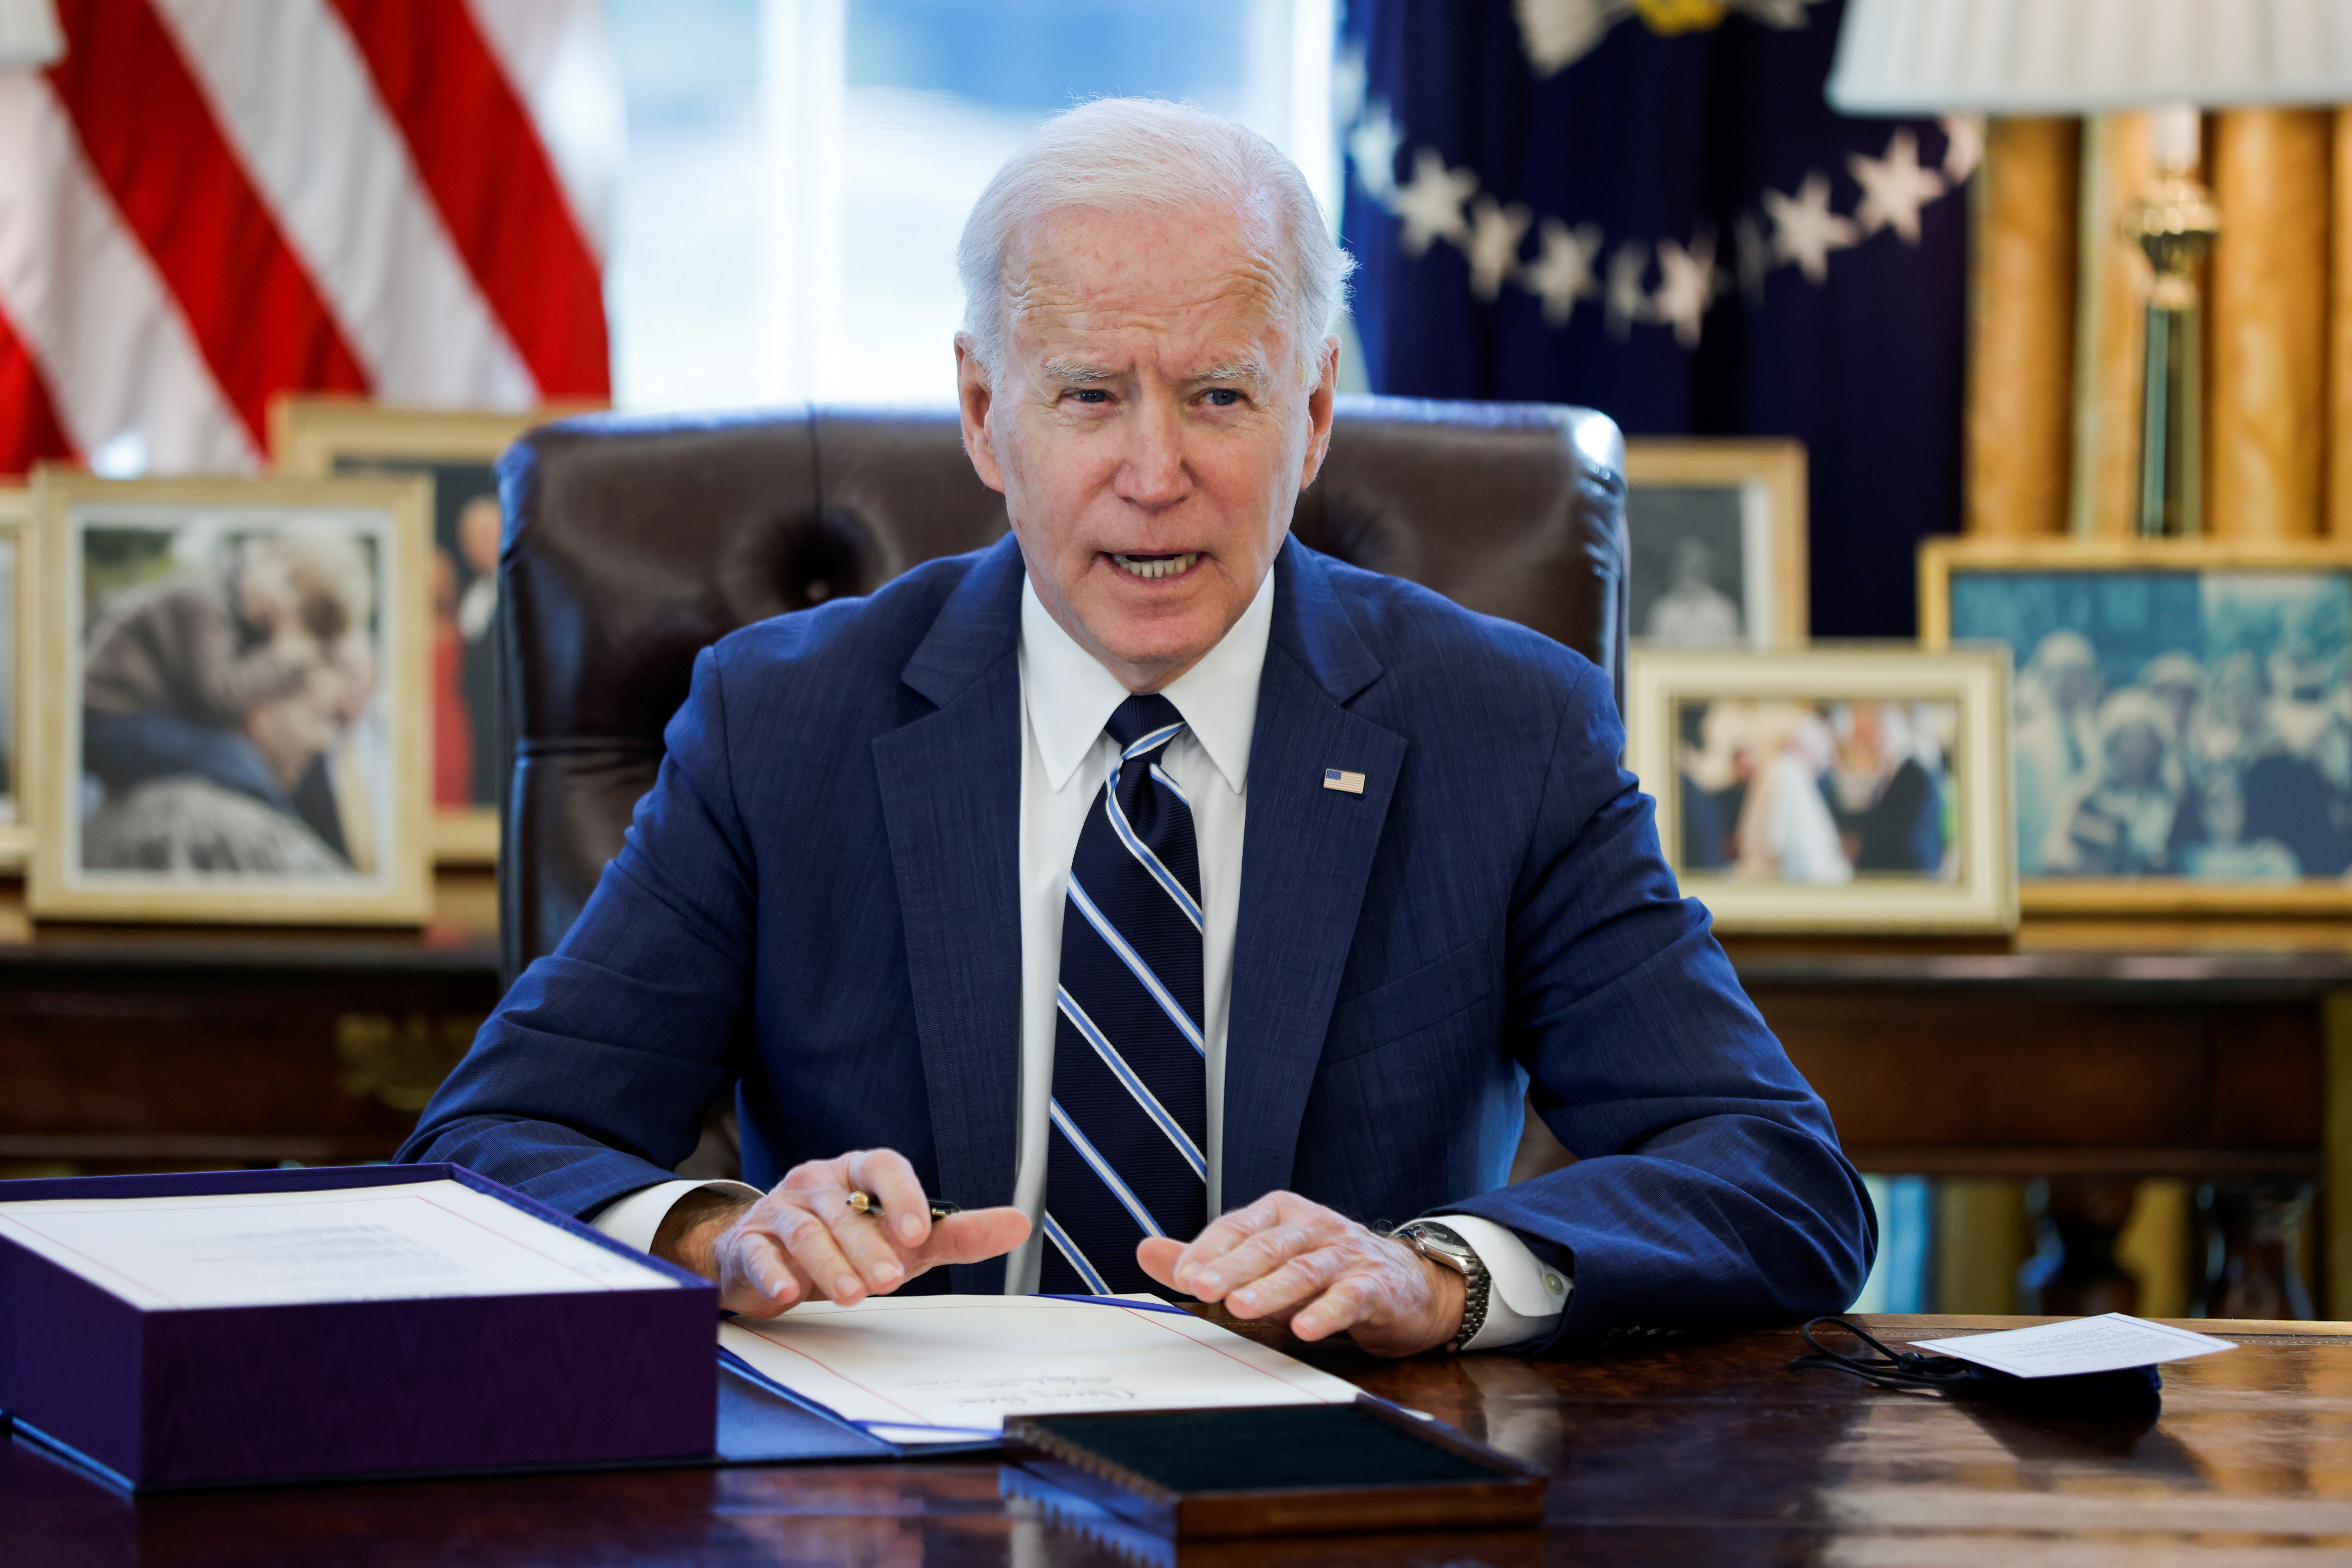 U.S. President Joe Biden signs the American Rescue Plan, a package of economic relief measures to respond to the impact of the coronavirus disease (COVID-19) pandemic, inside the Oval Office at the White House in Washington, U.S., March 11, 2021. REUTERS/Tom Brenner